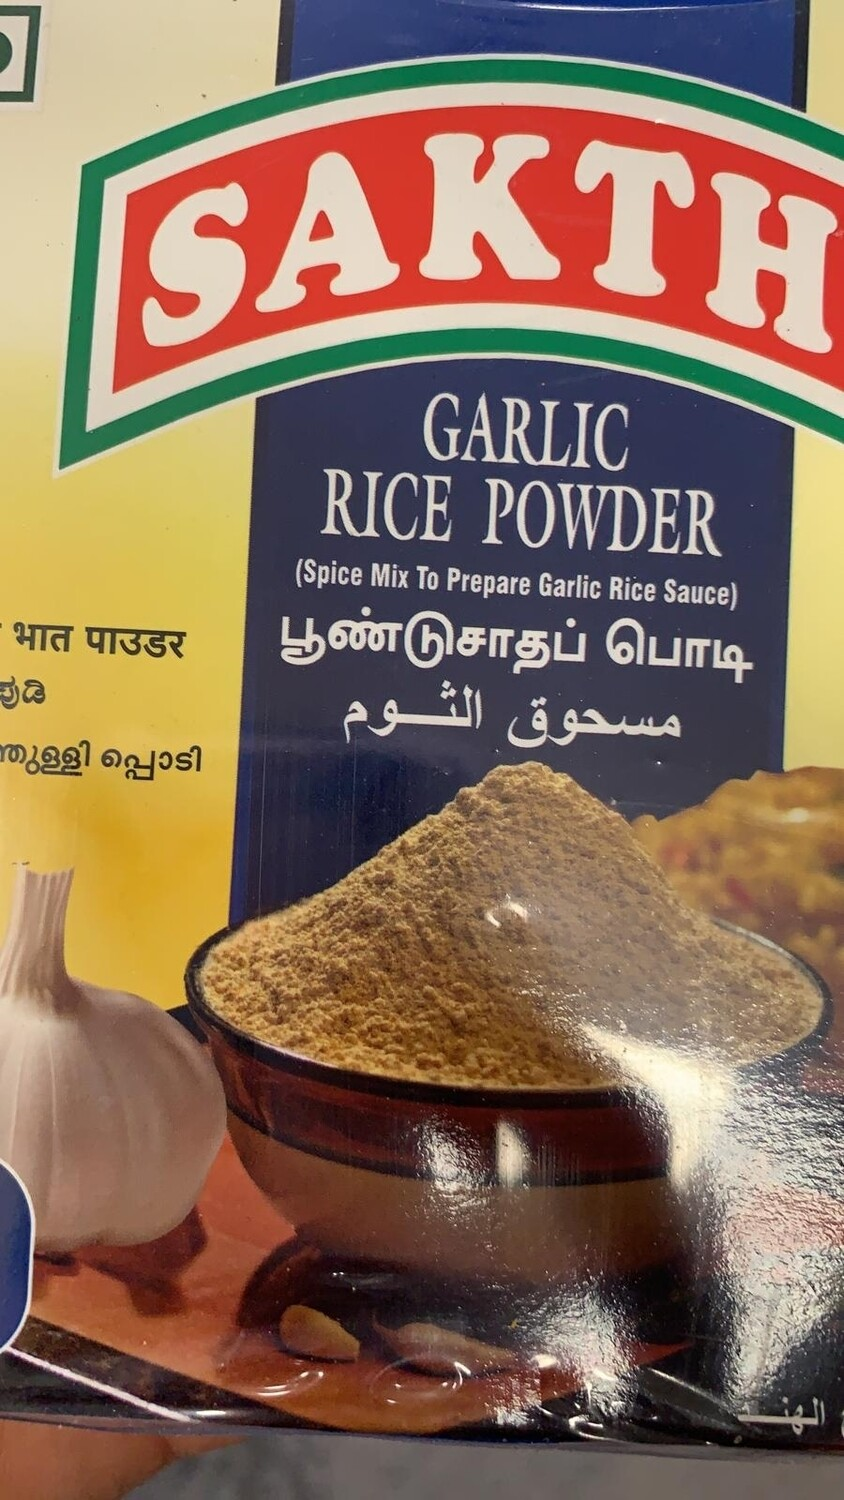 SAKTHI GARLIC RICE POWDER 200g